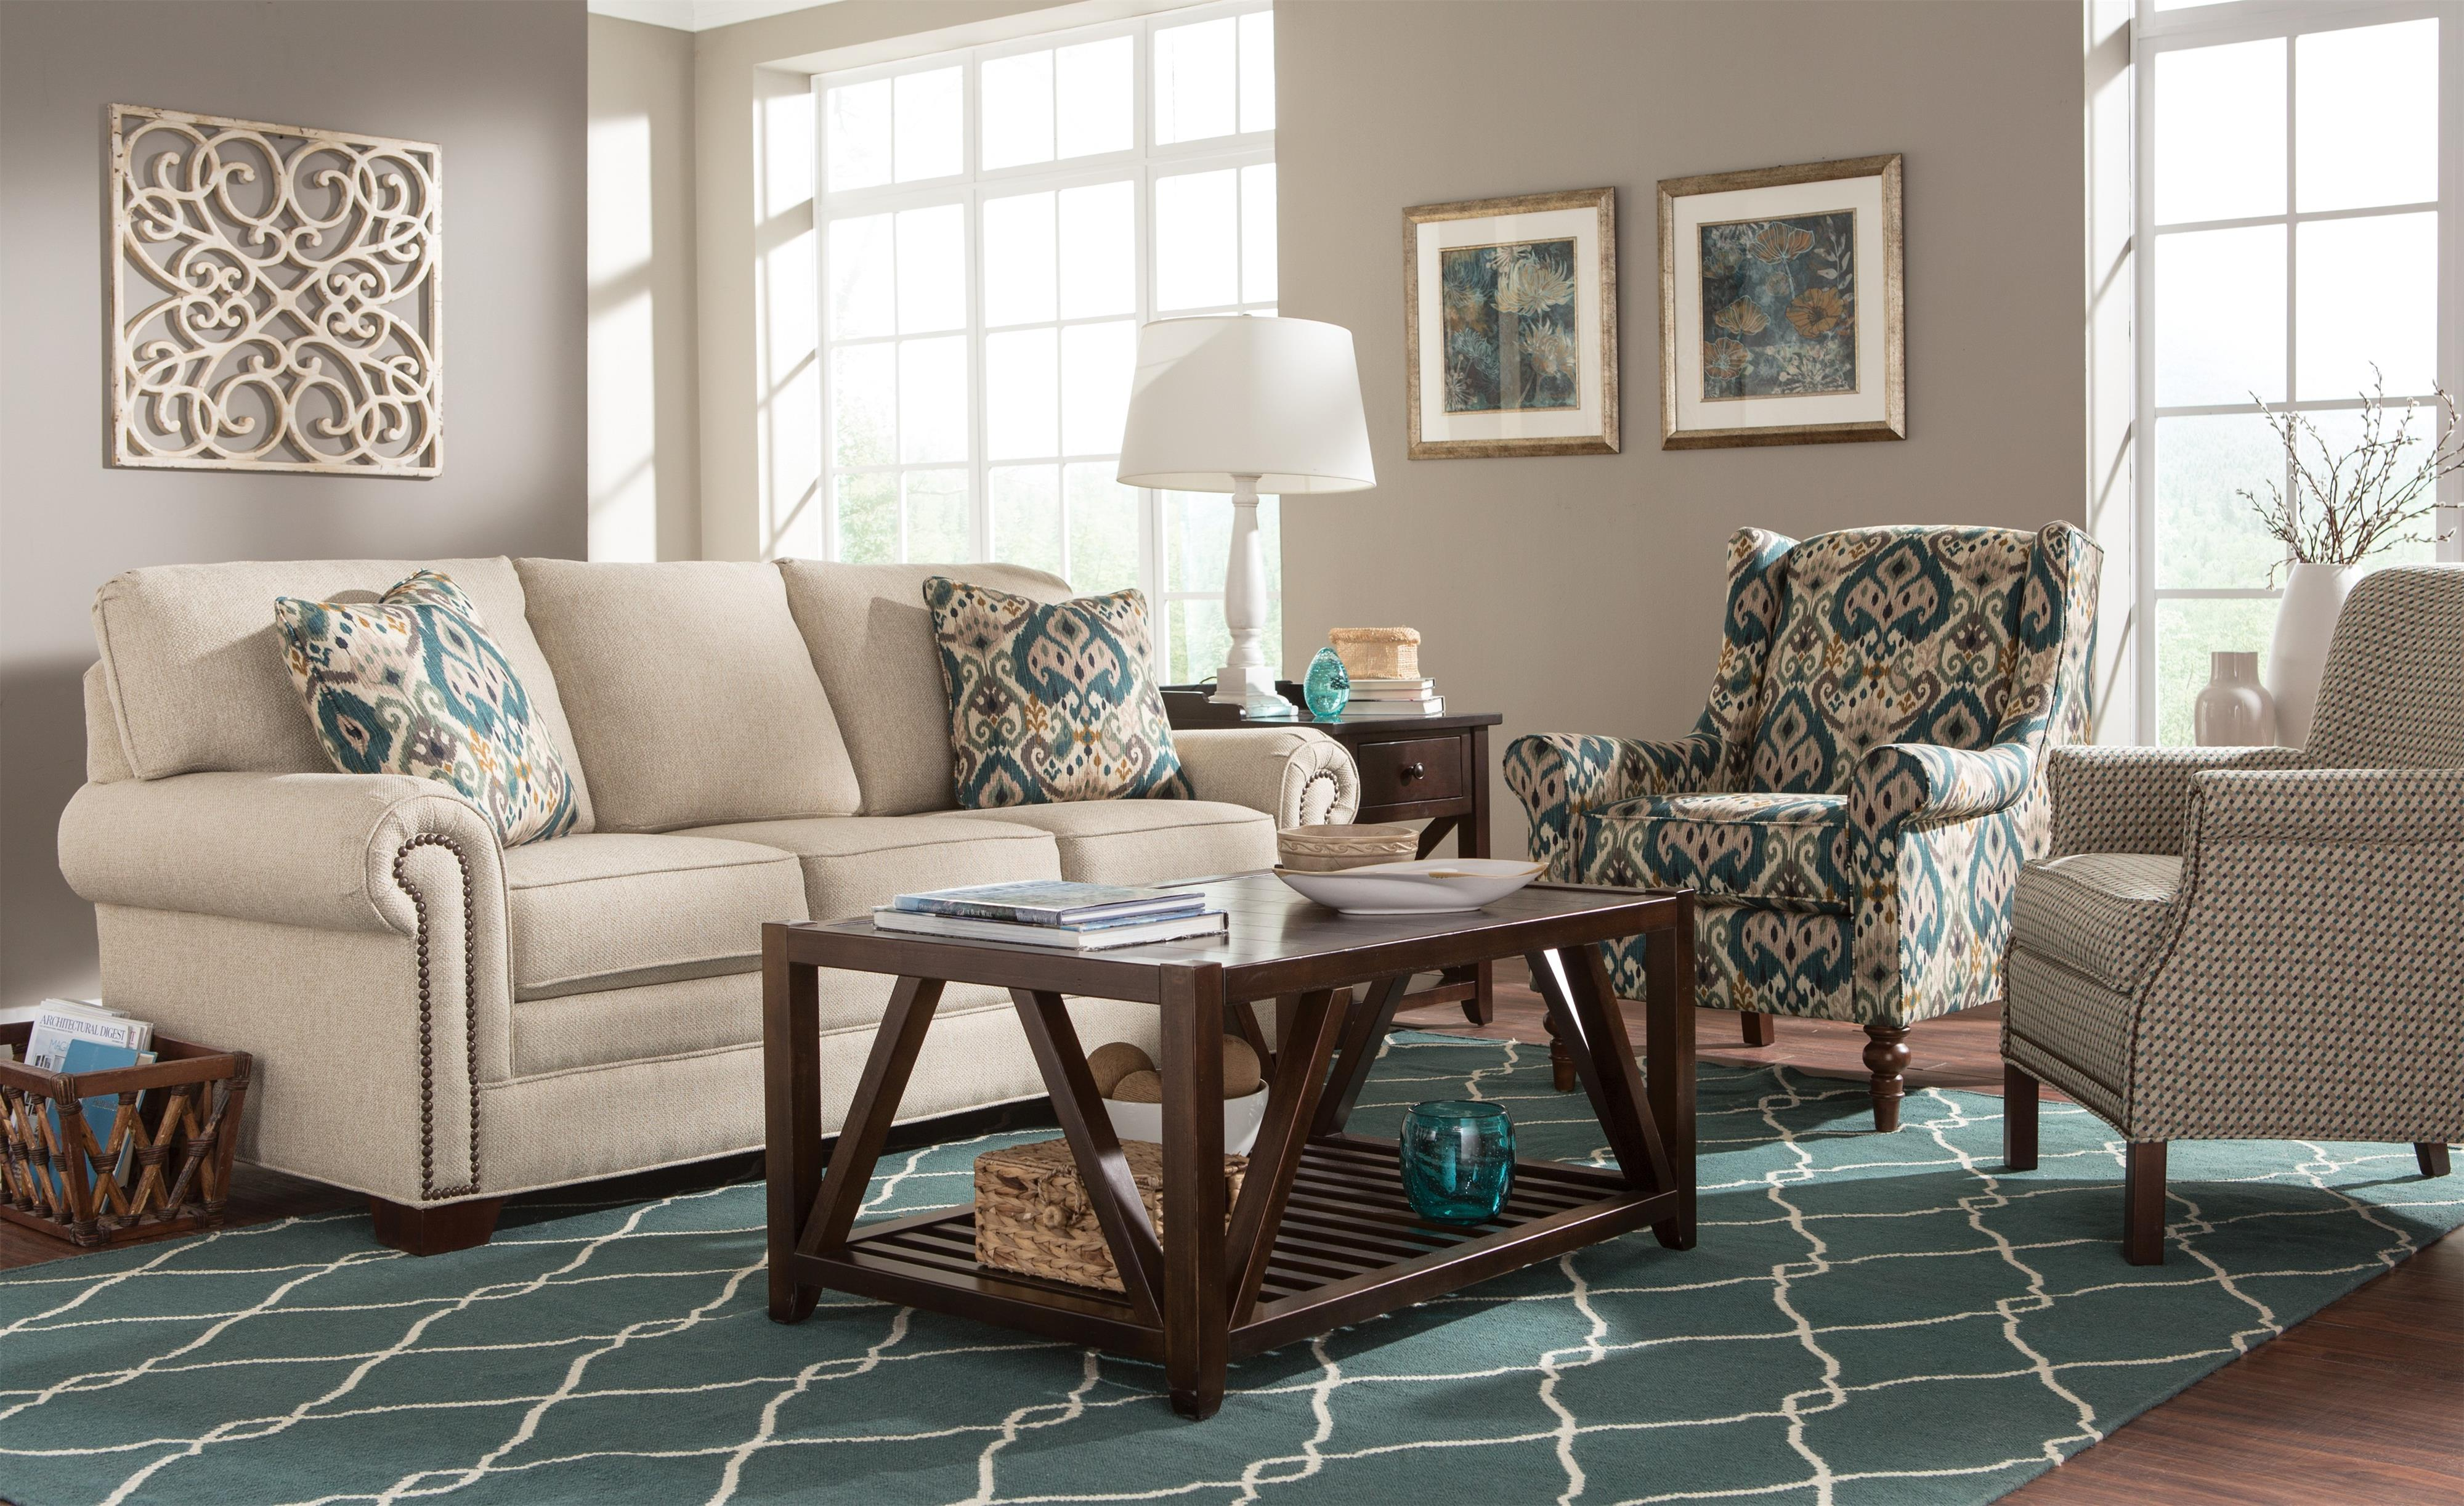 Transitional Rolled Arm Accent Chair with Nailhead Trim by